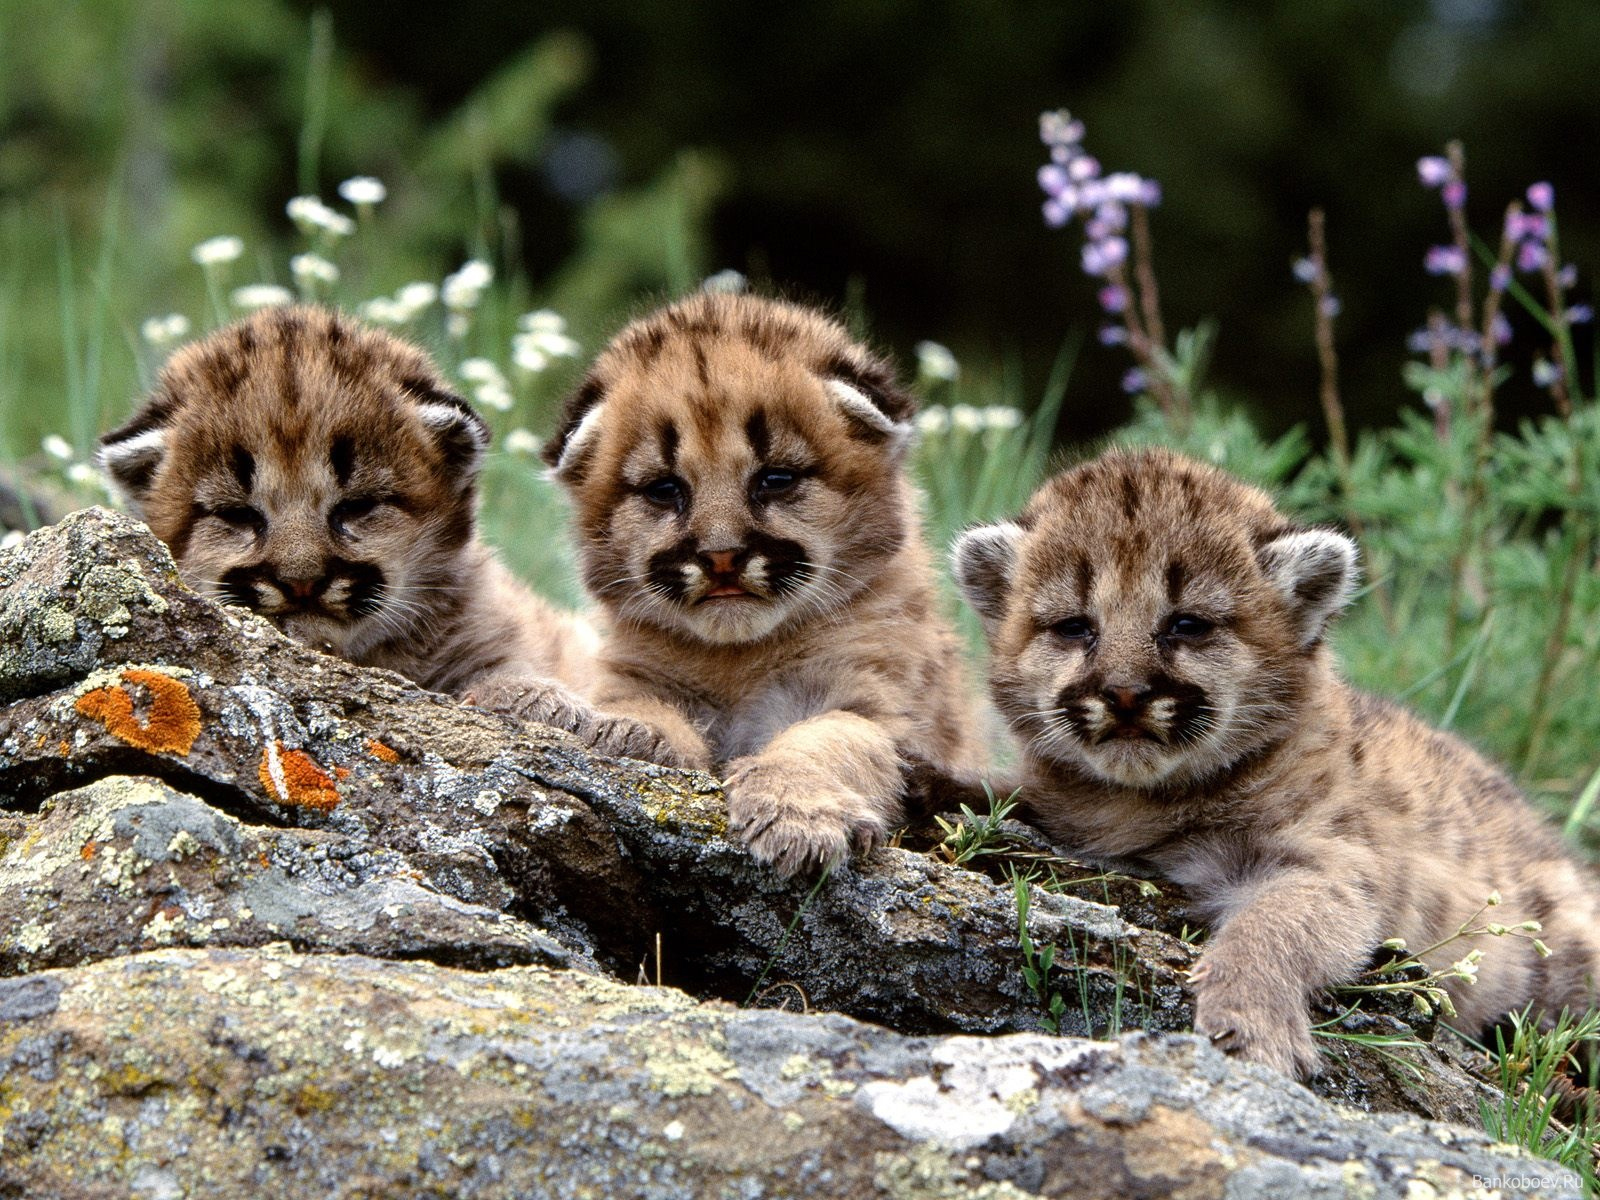 6034 download wallpaper Animals, Cheetah screensavers and pictures for free